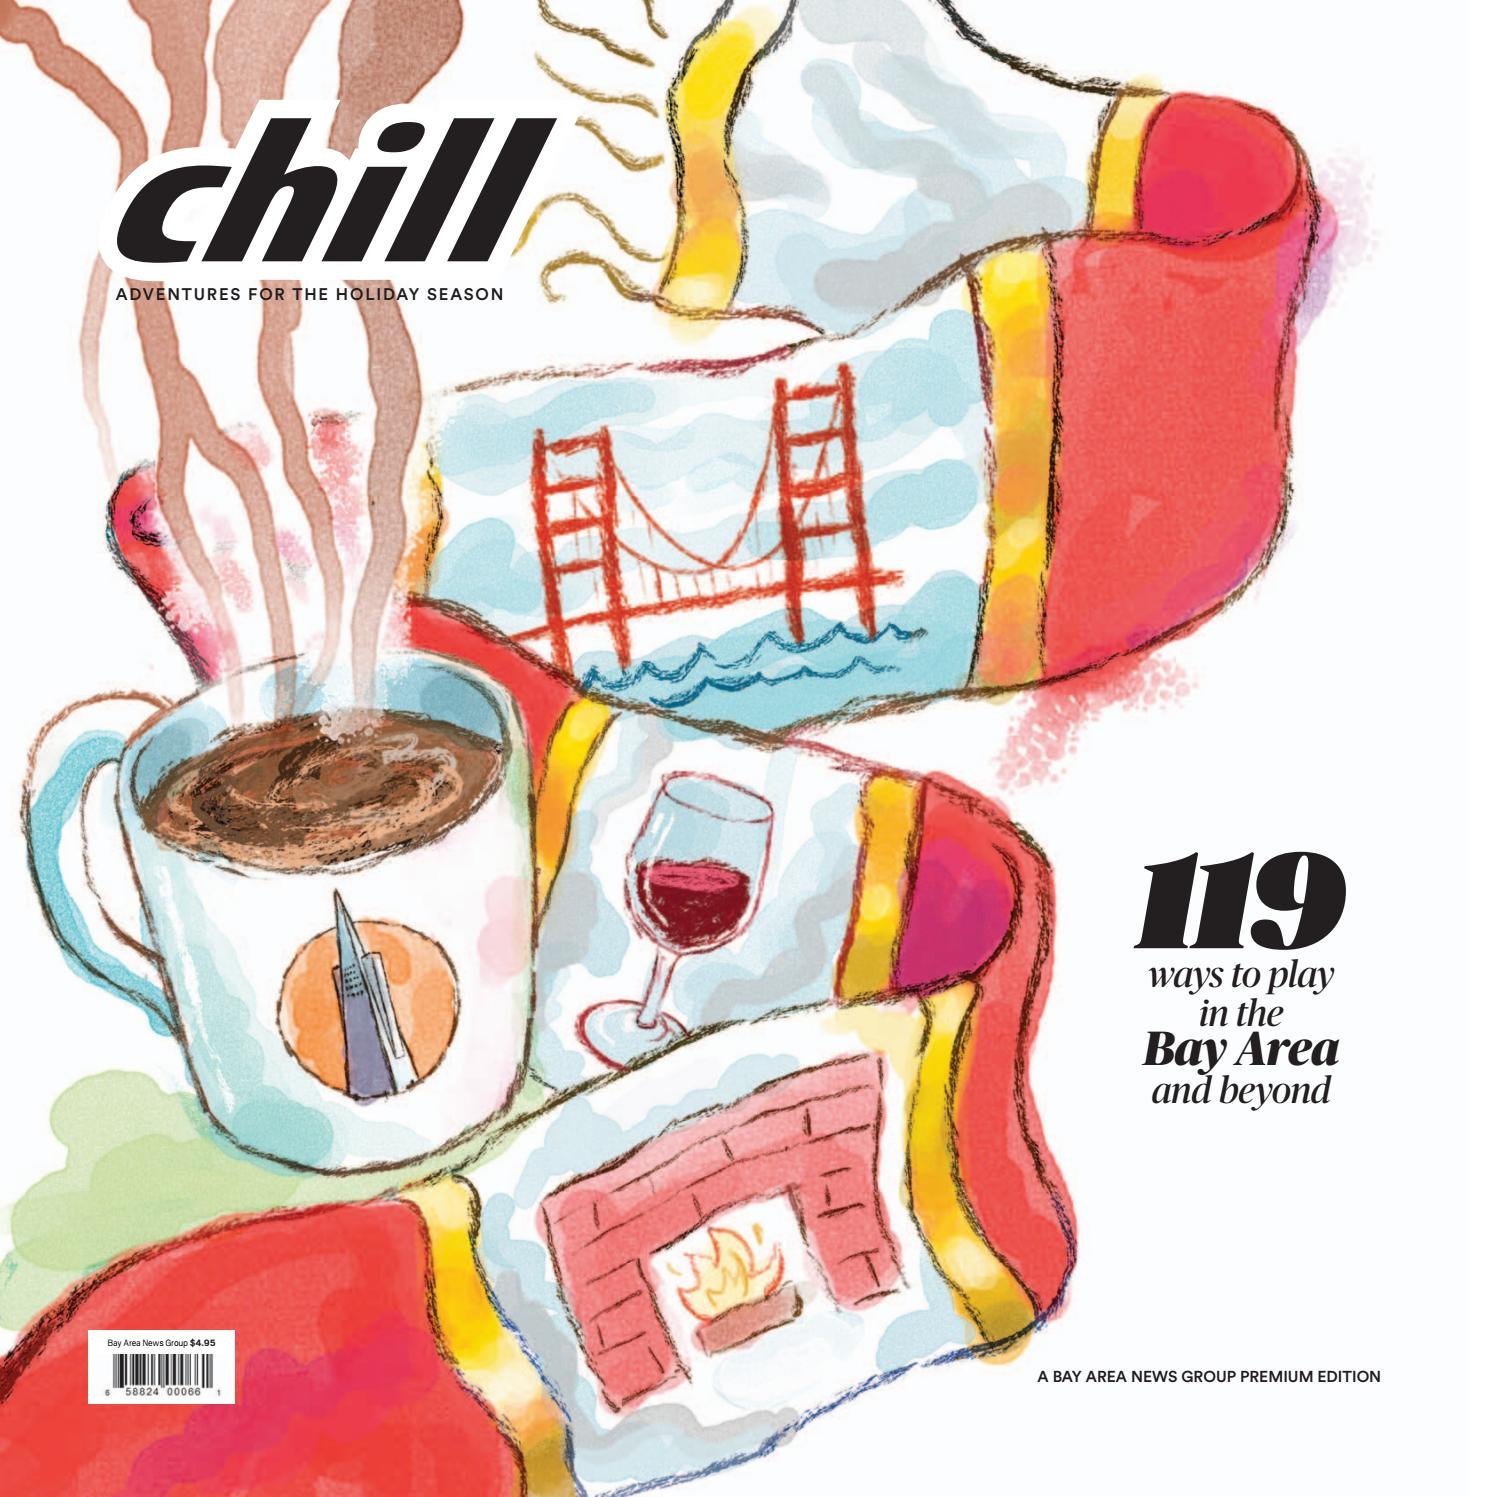 6b2506909b9a Chill - 2018 by MediaNews Group Targeted Products - issuu